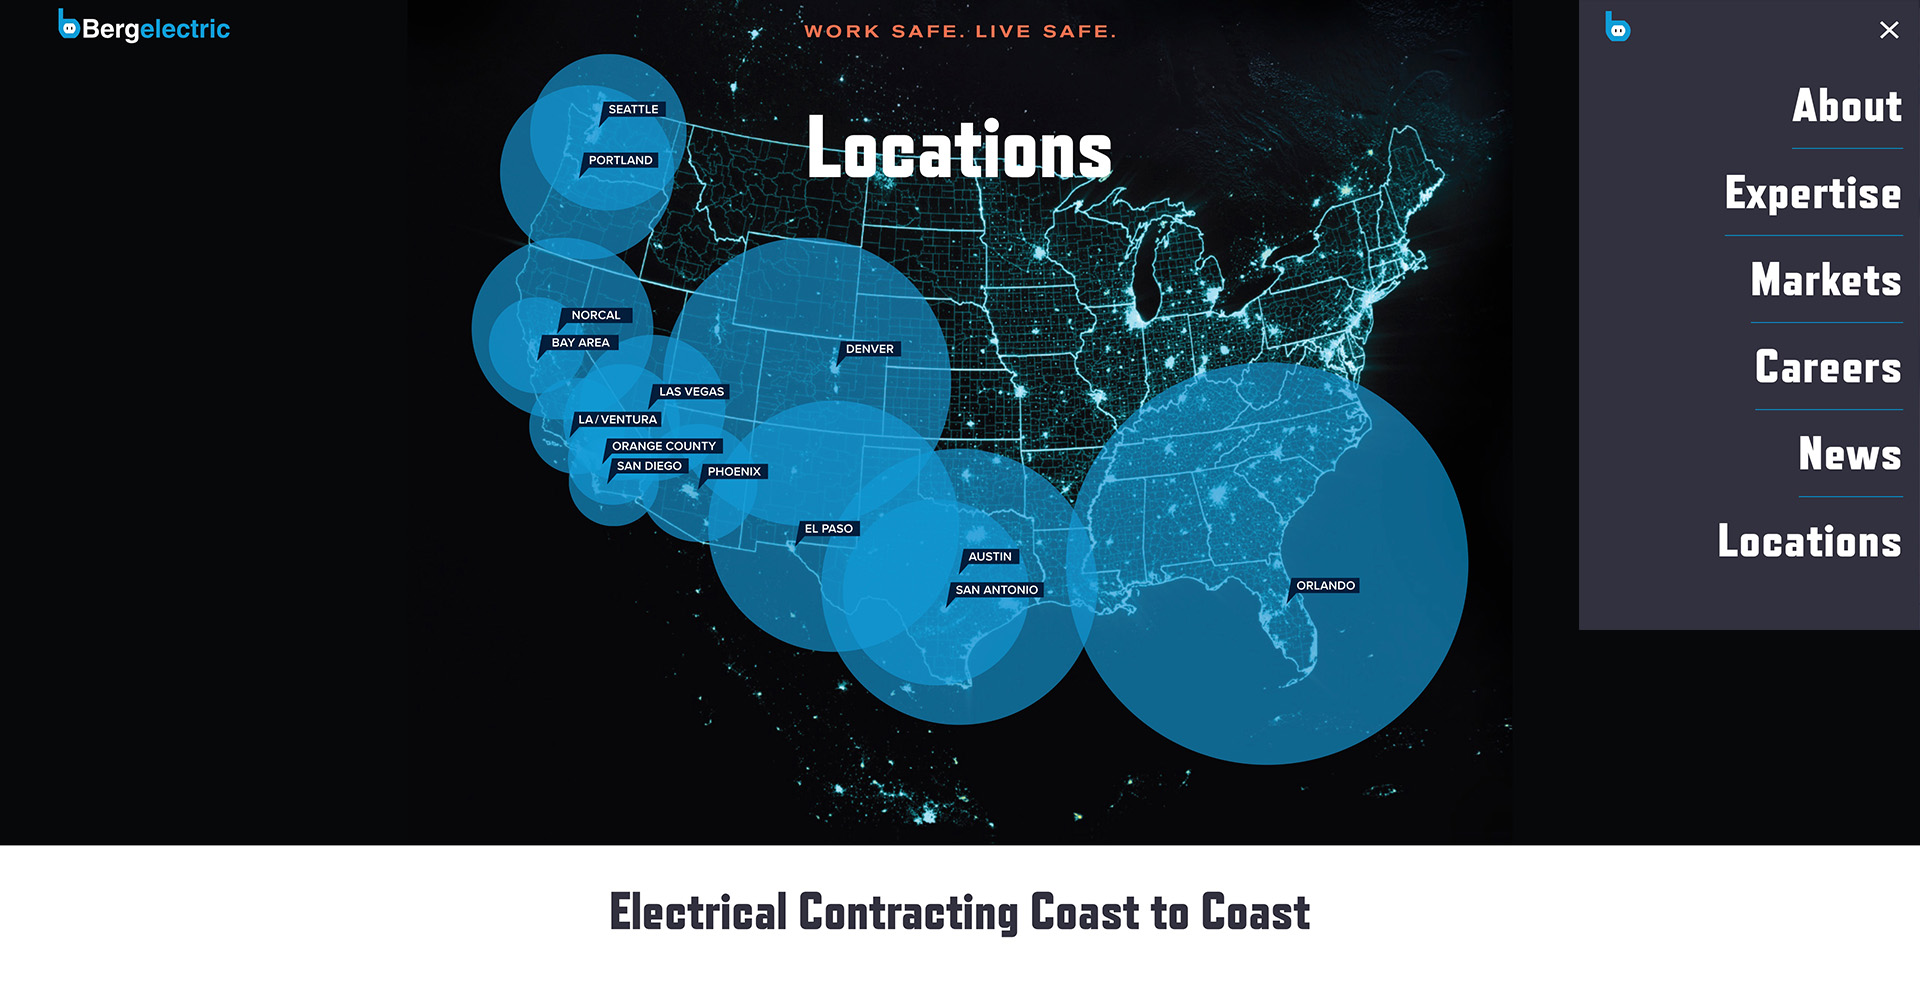 Bergelectric website Locations page